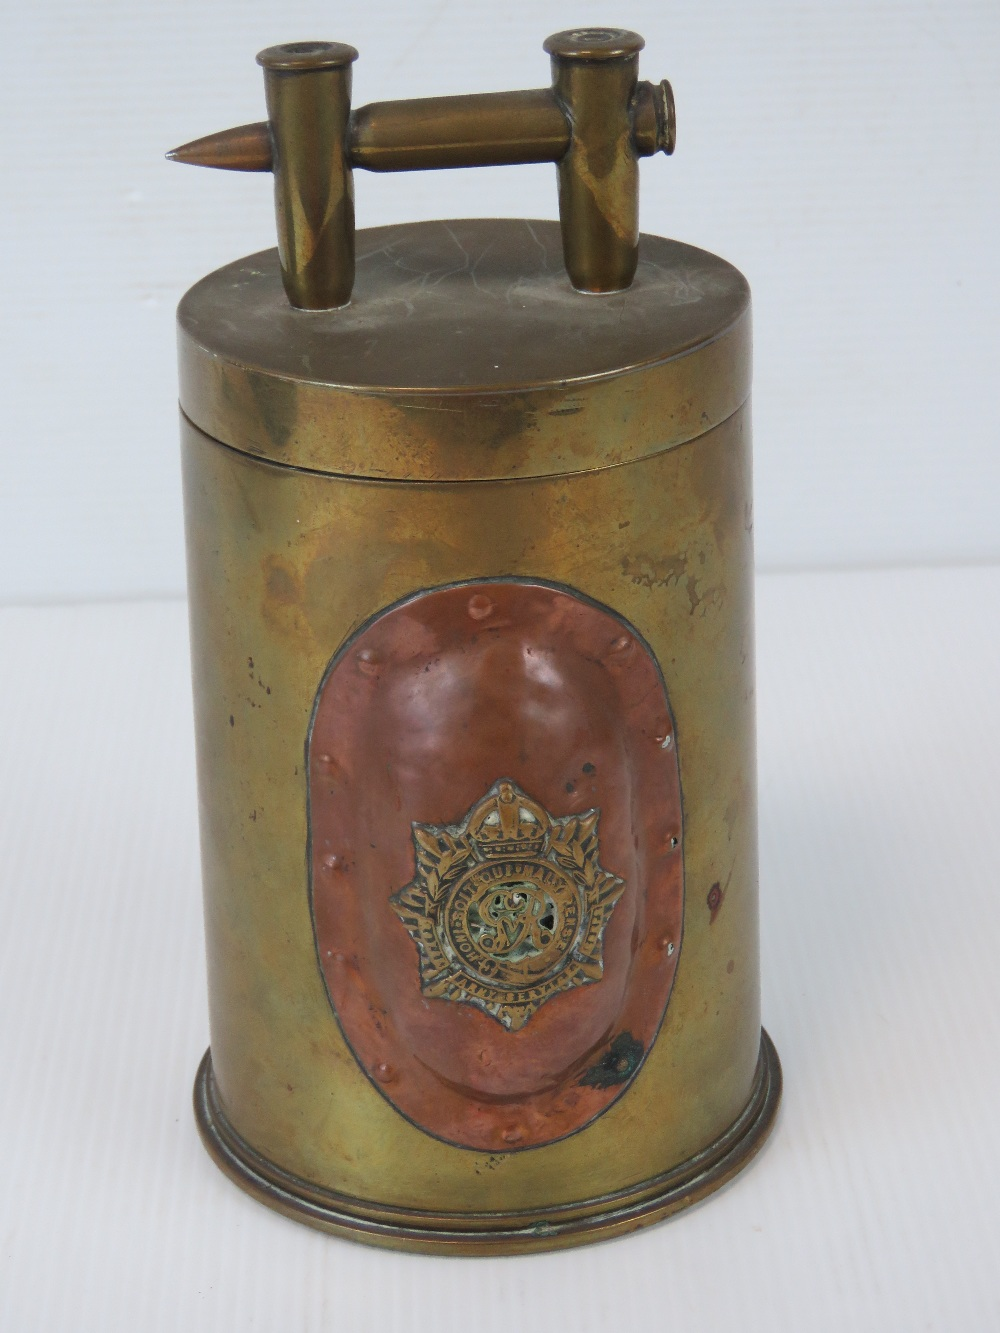 A trench Art shell case lidded pot having Royal Army Services Corps and Canadian Military badges